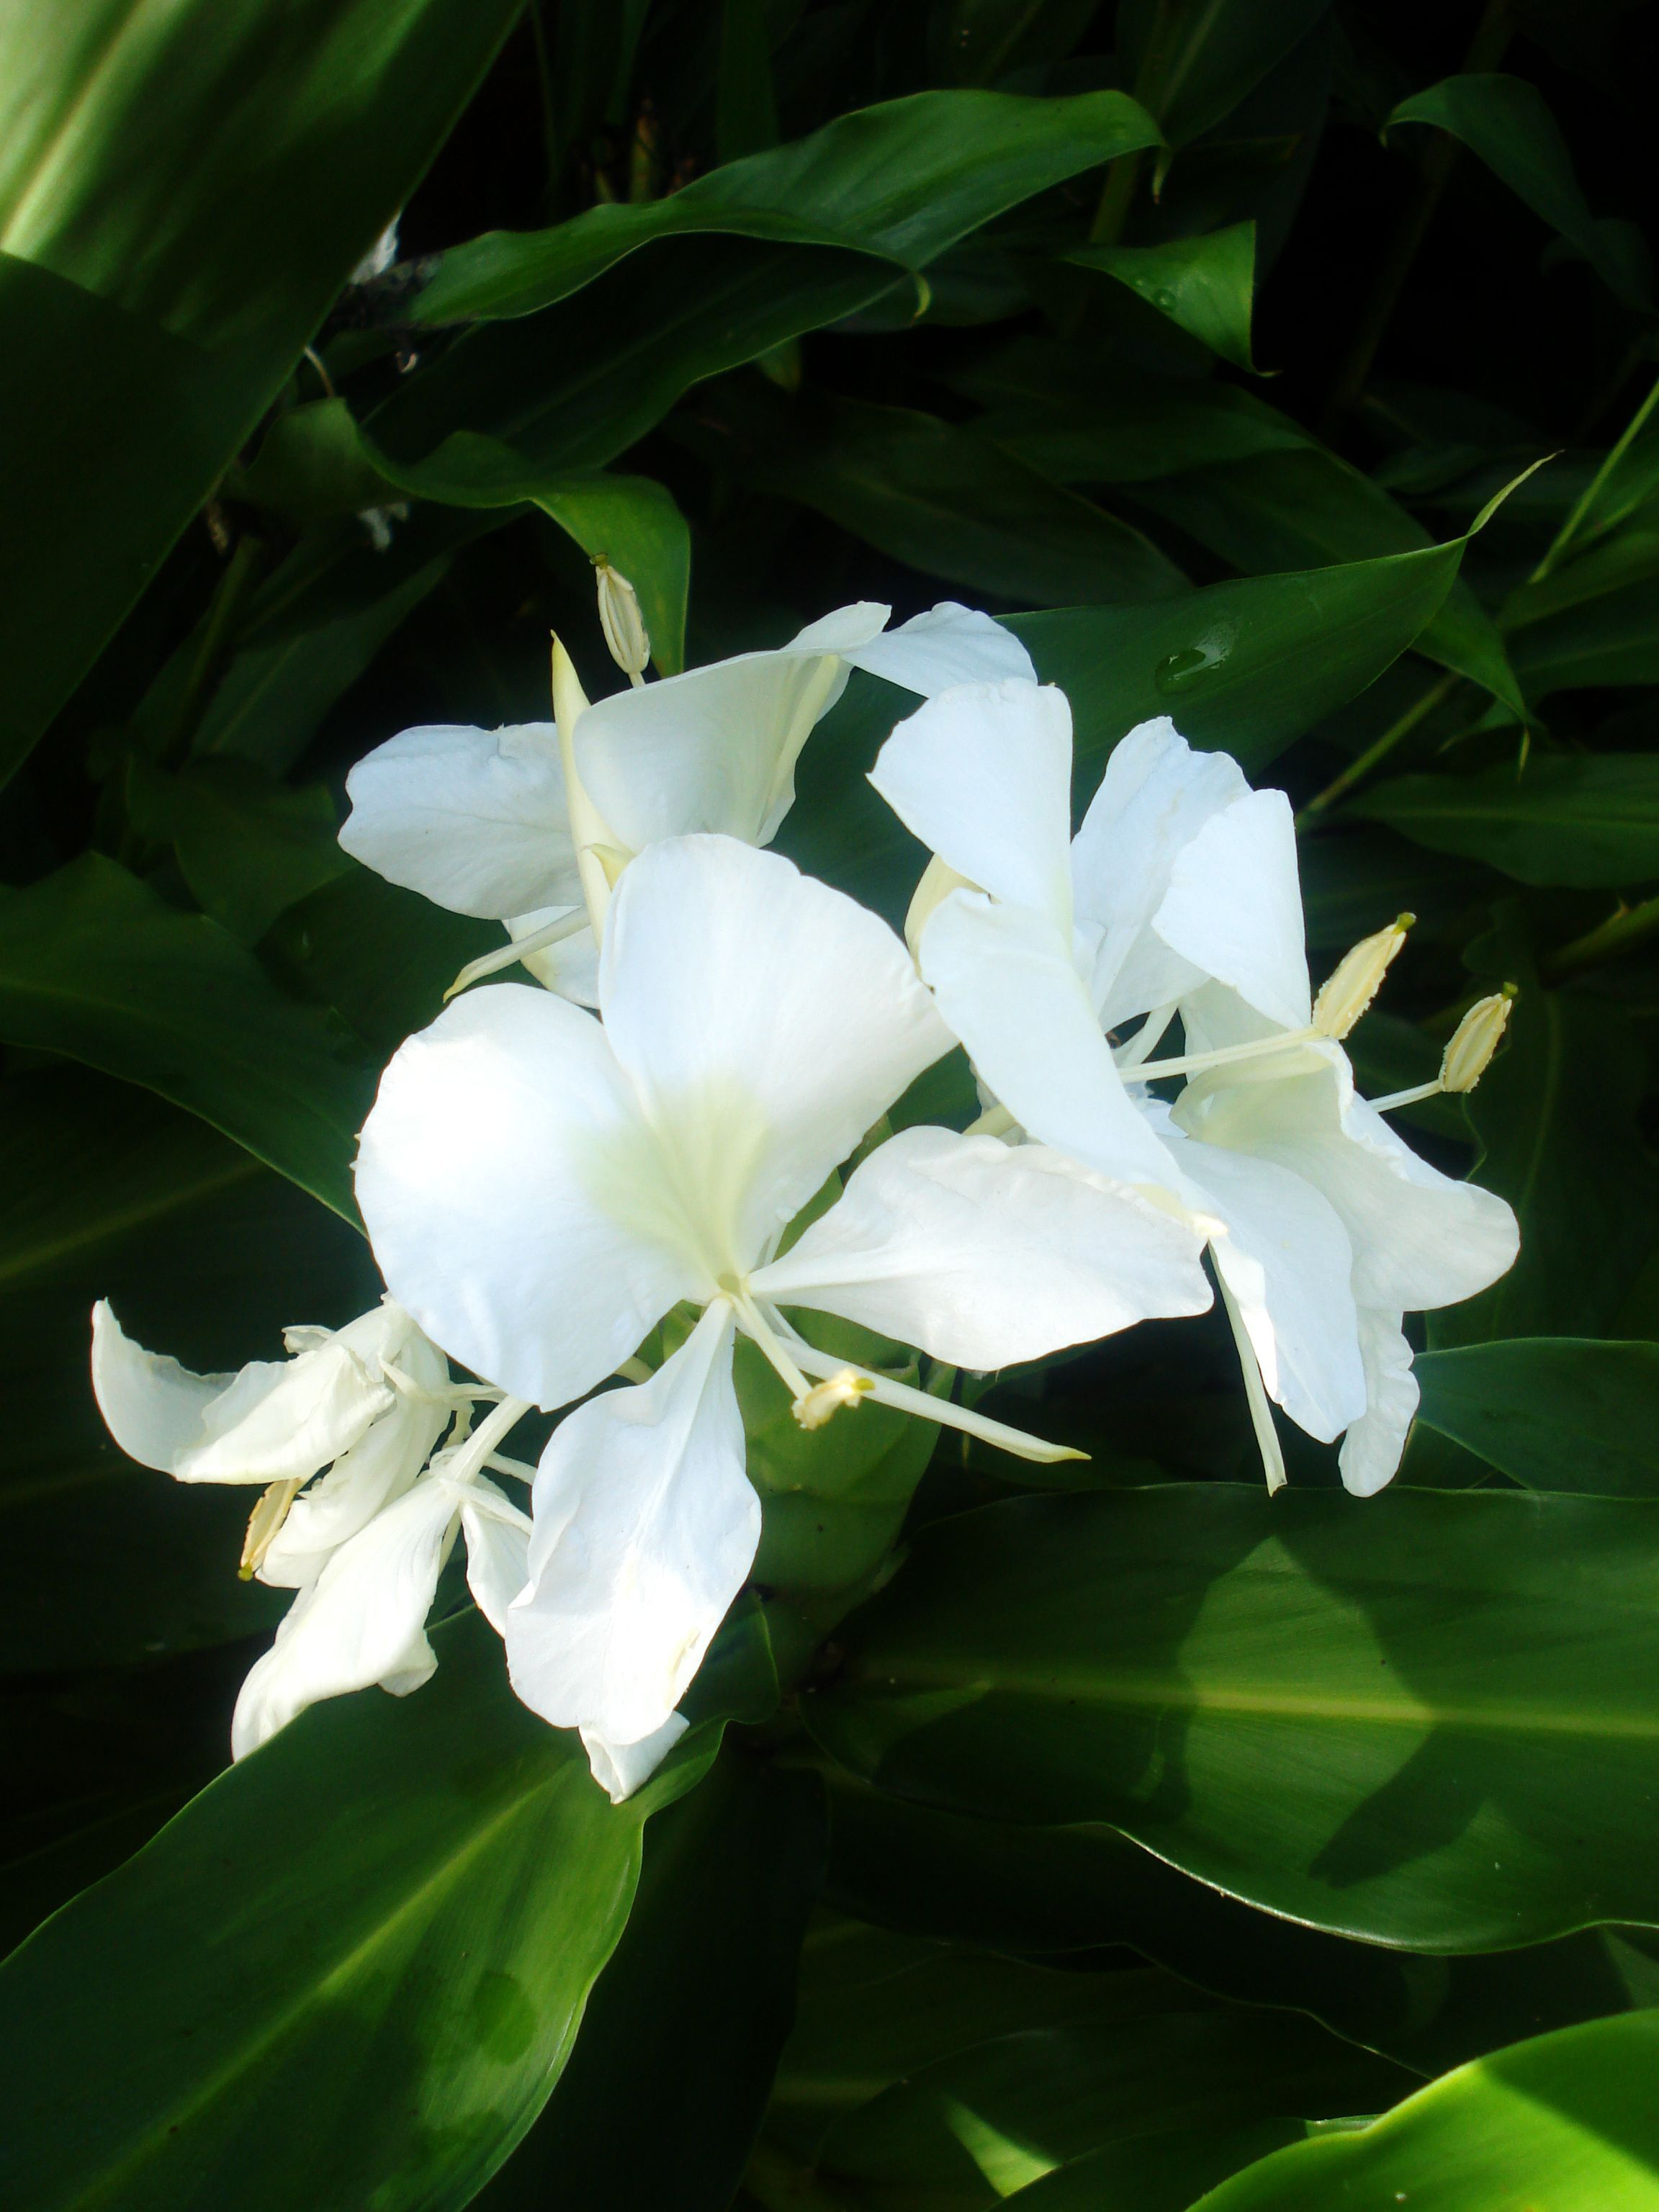 Cuba white ginger lily butterfly mariposa blanca hedychium cuba white ginger lily butterfly mariposa blanca hedychium coronarium httpenpediawikihedychiumcoronarium httpespediawiki mightylinksfo